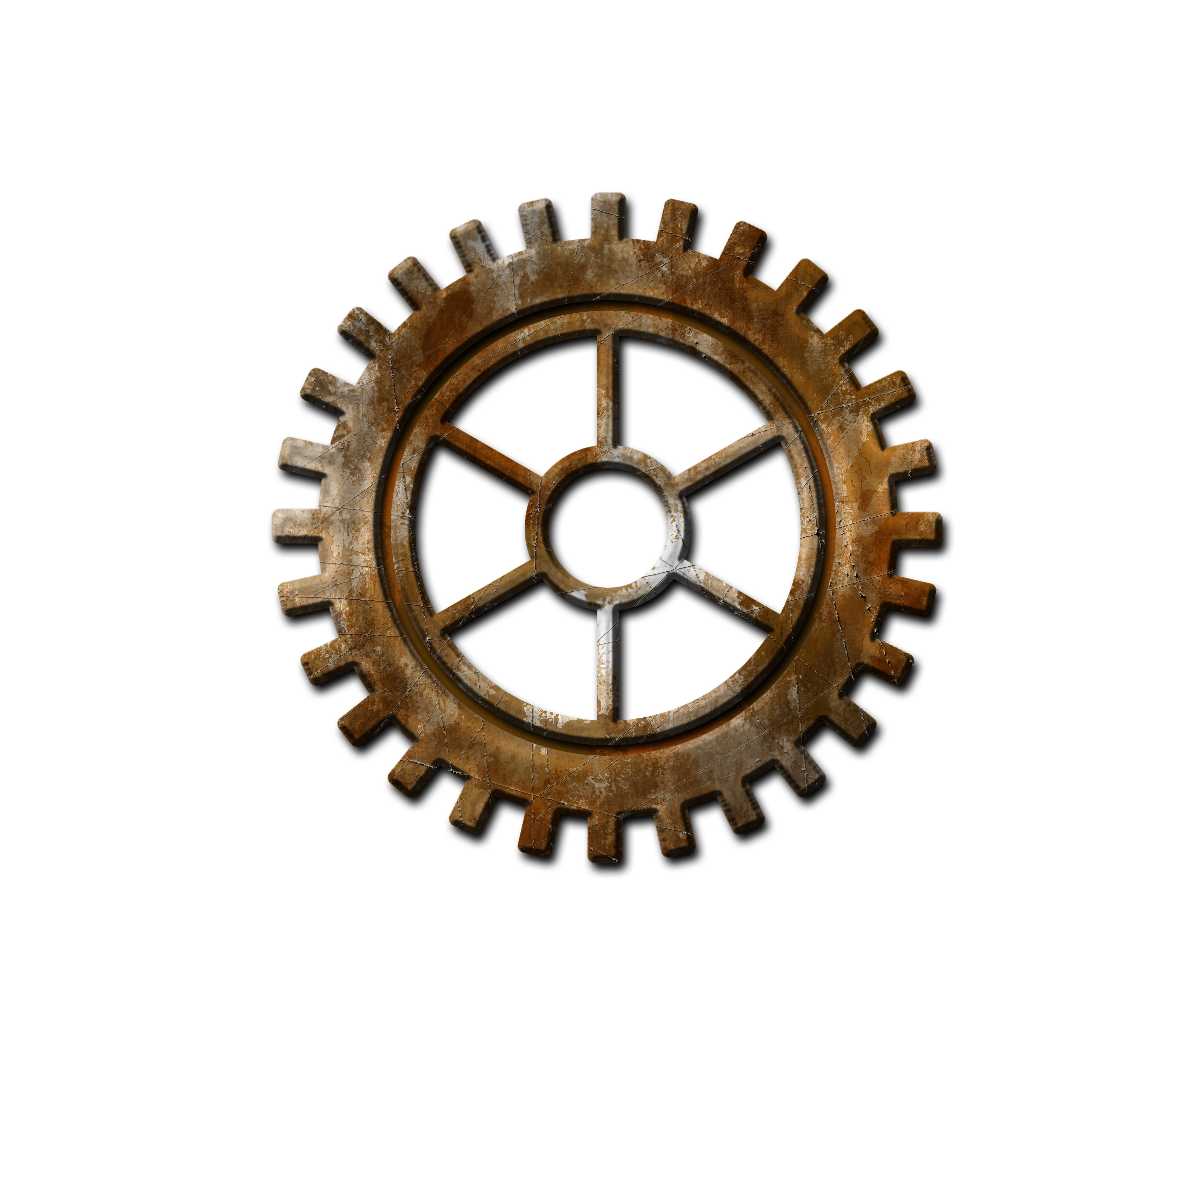 Steampunk clipart christmas. Gear transparent background png